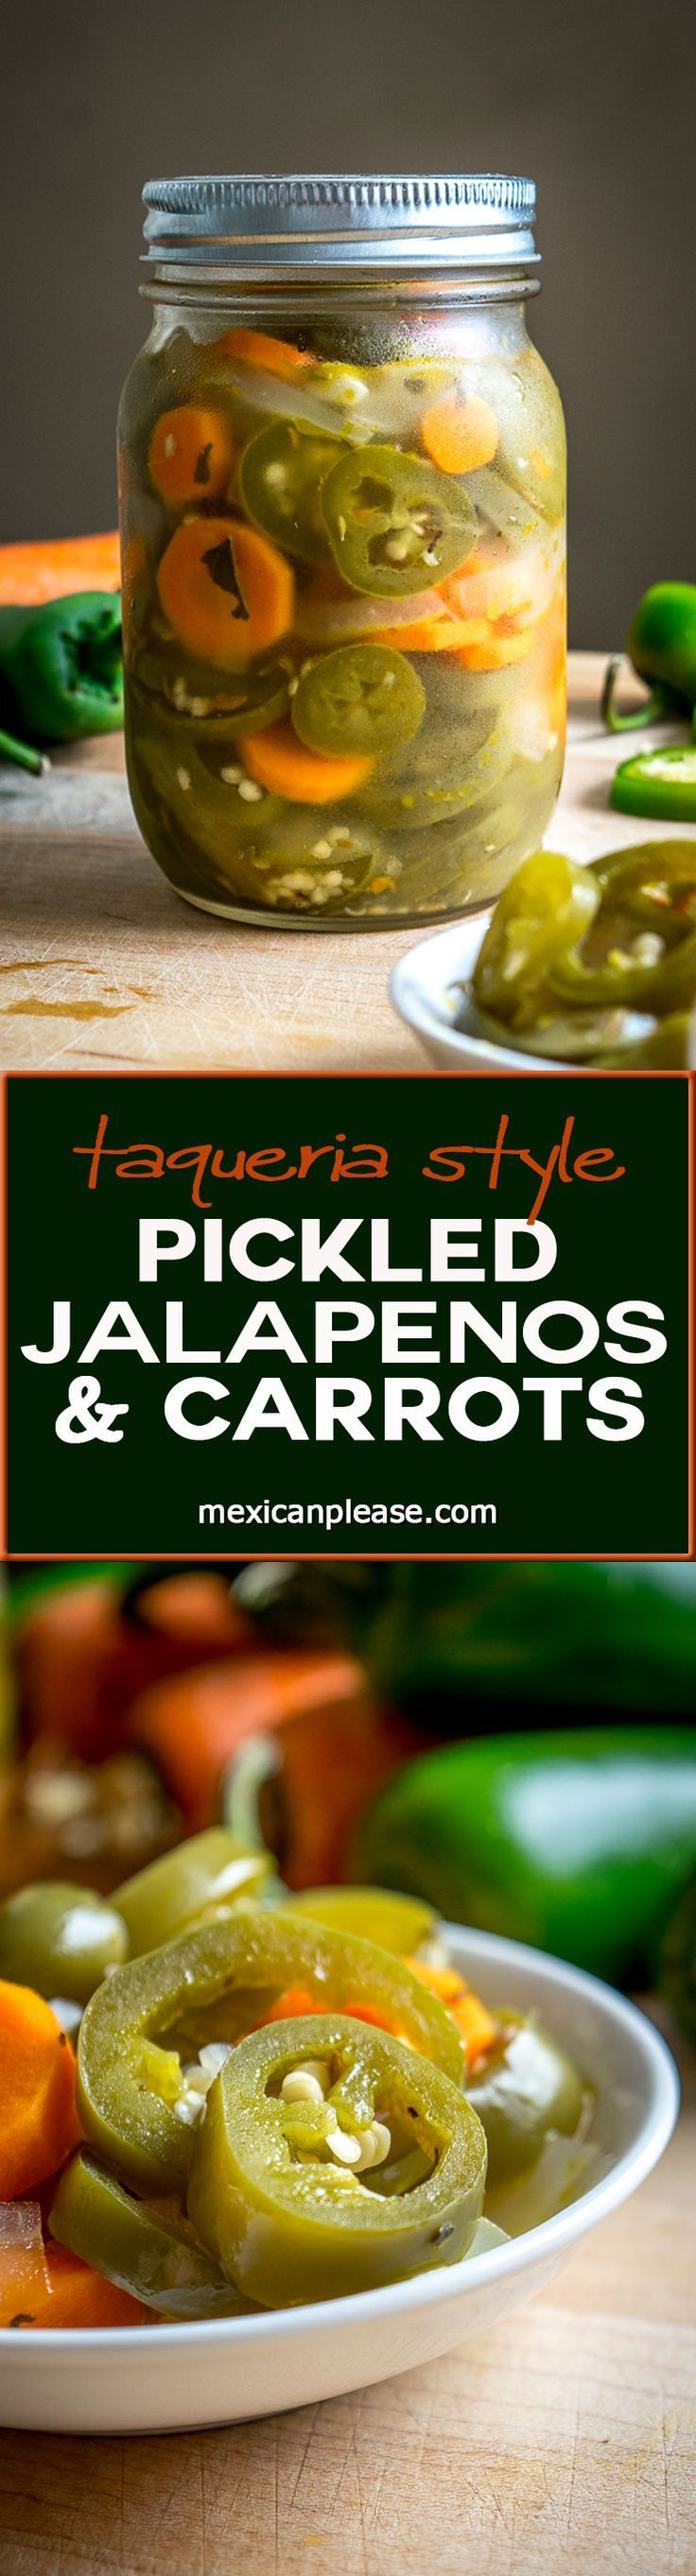 Sometimes the zip from a pickled jalapeno will create the perfectly balanced taco bite. Making a batch of these Taqueria Style Pickled Jalapeno and Carrots is super easy and lets you control how much spice you want in your life! Buen Provecho. http://mexicanplease.com